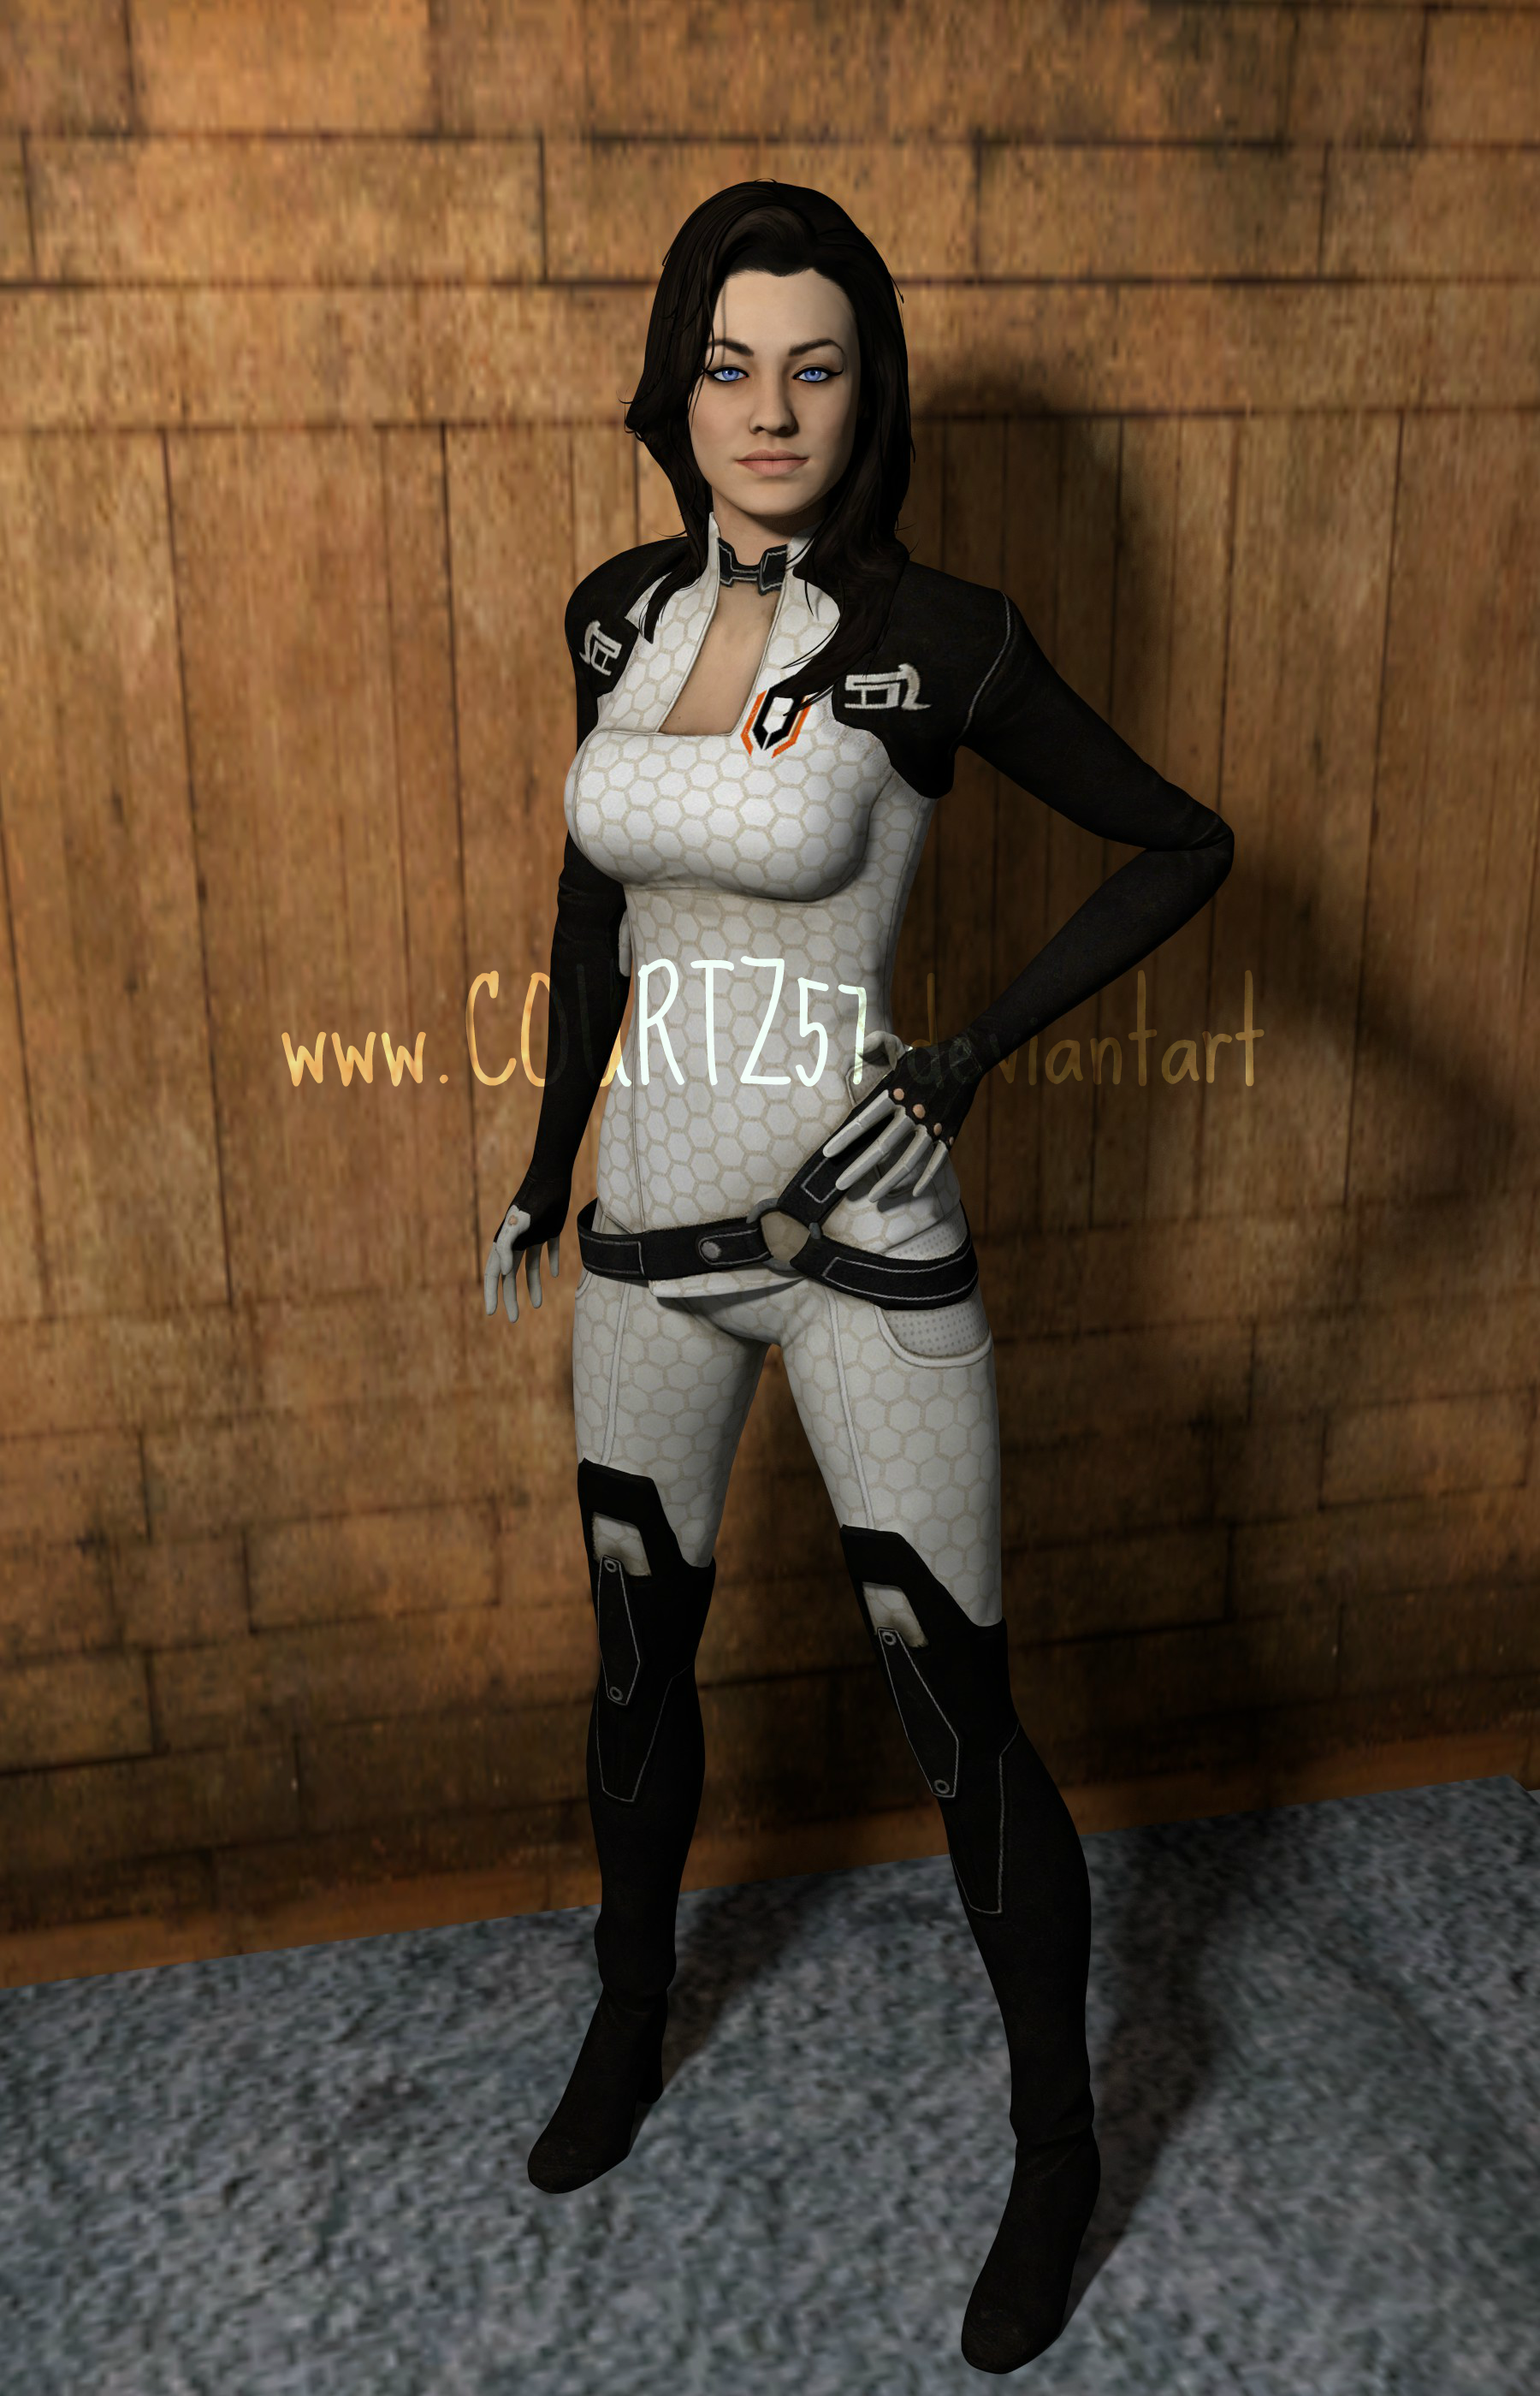 Game Characters render series: Miranda Lawson by COURTZ57